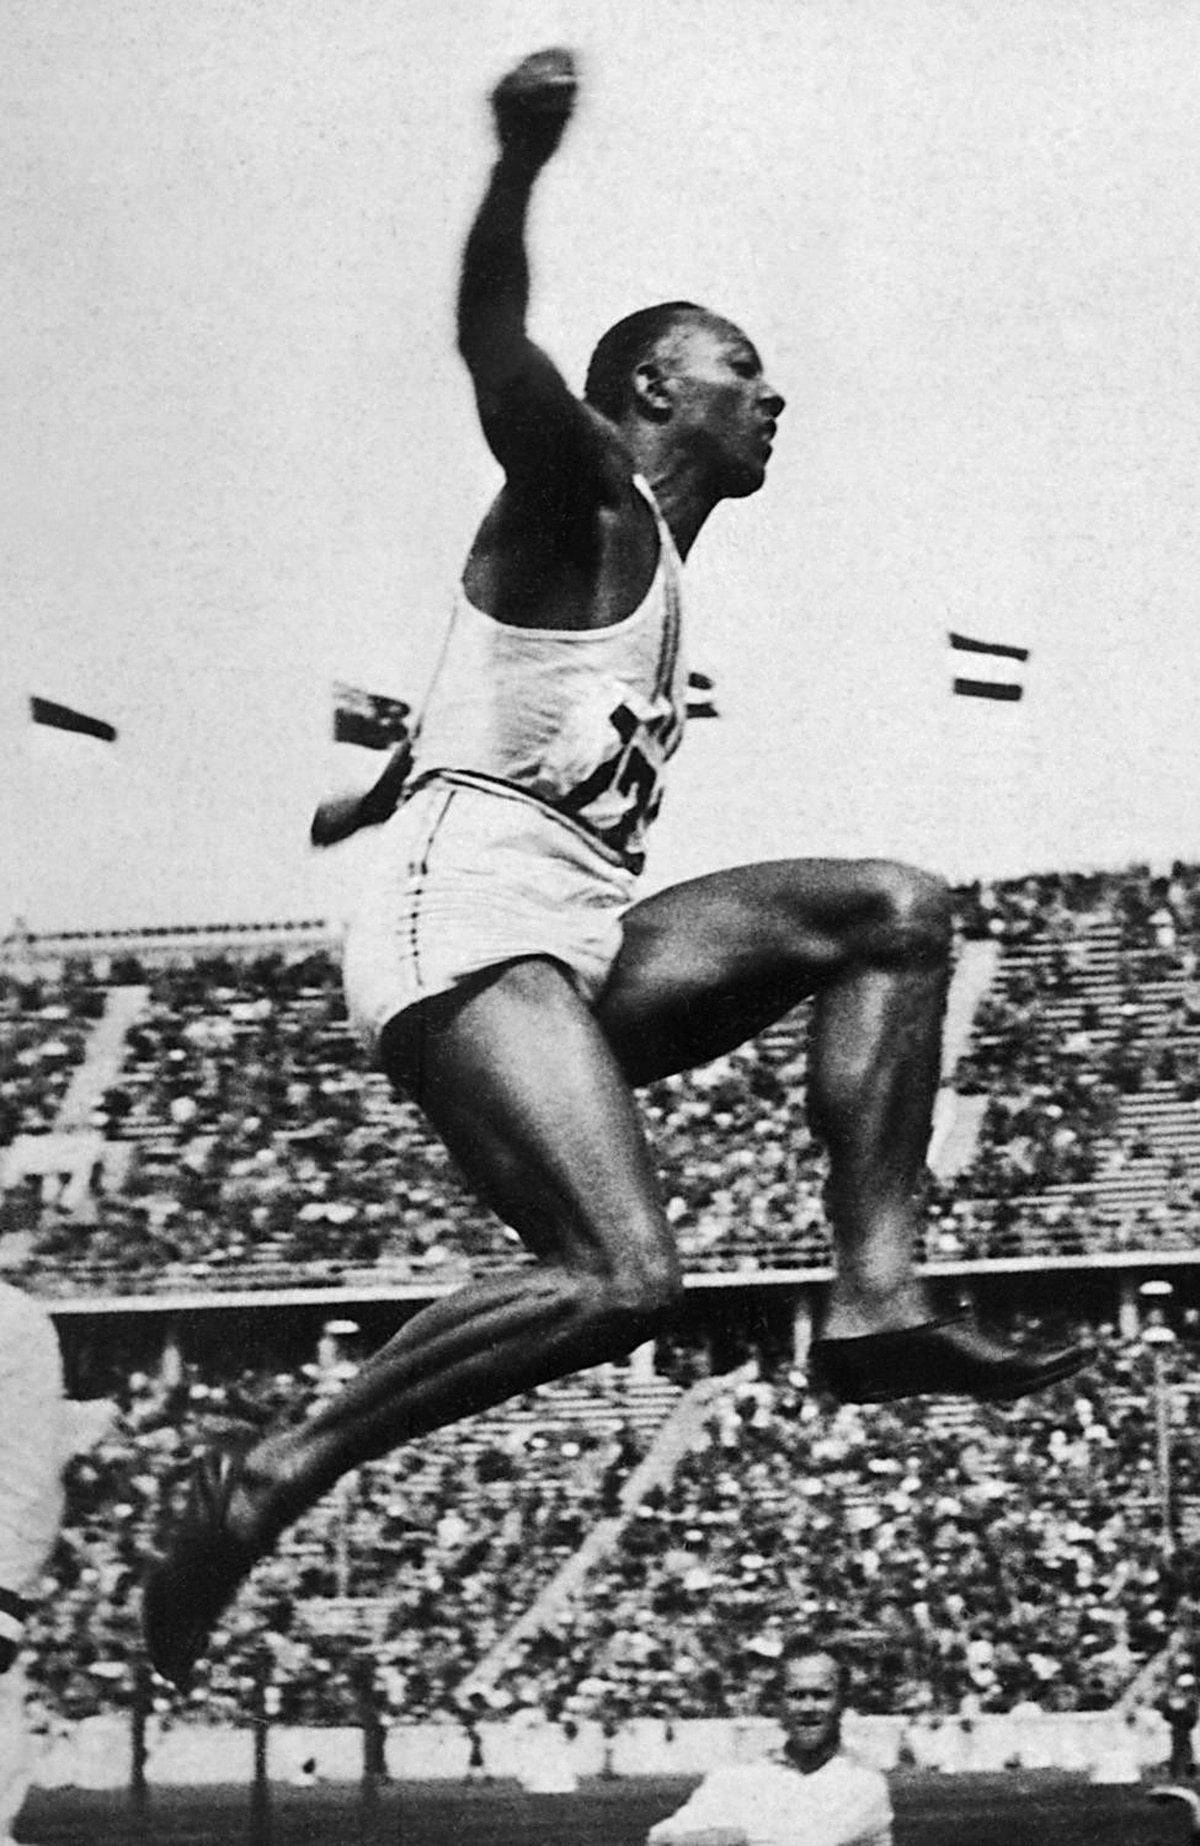 "US champion ""Jesse"" (James Cleveland) Owens is airborne during the long jump event, that he won, 09 August 1936 during Olympic Games in Berlin. Grandson of a slave and legendary athlete, ""Jesse"" Owens established 6 world records in 1935. Jesse Owens retained his 100m world record for 20 years and his long jump world record for 25 years."